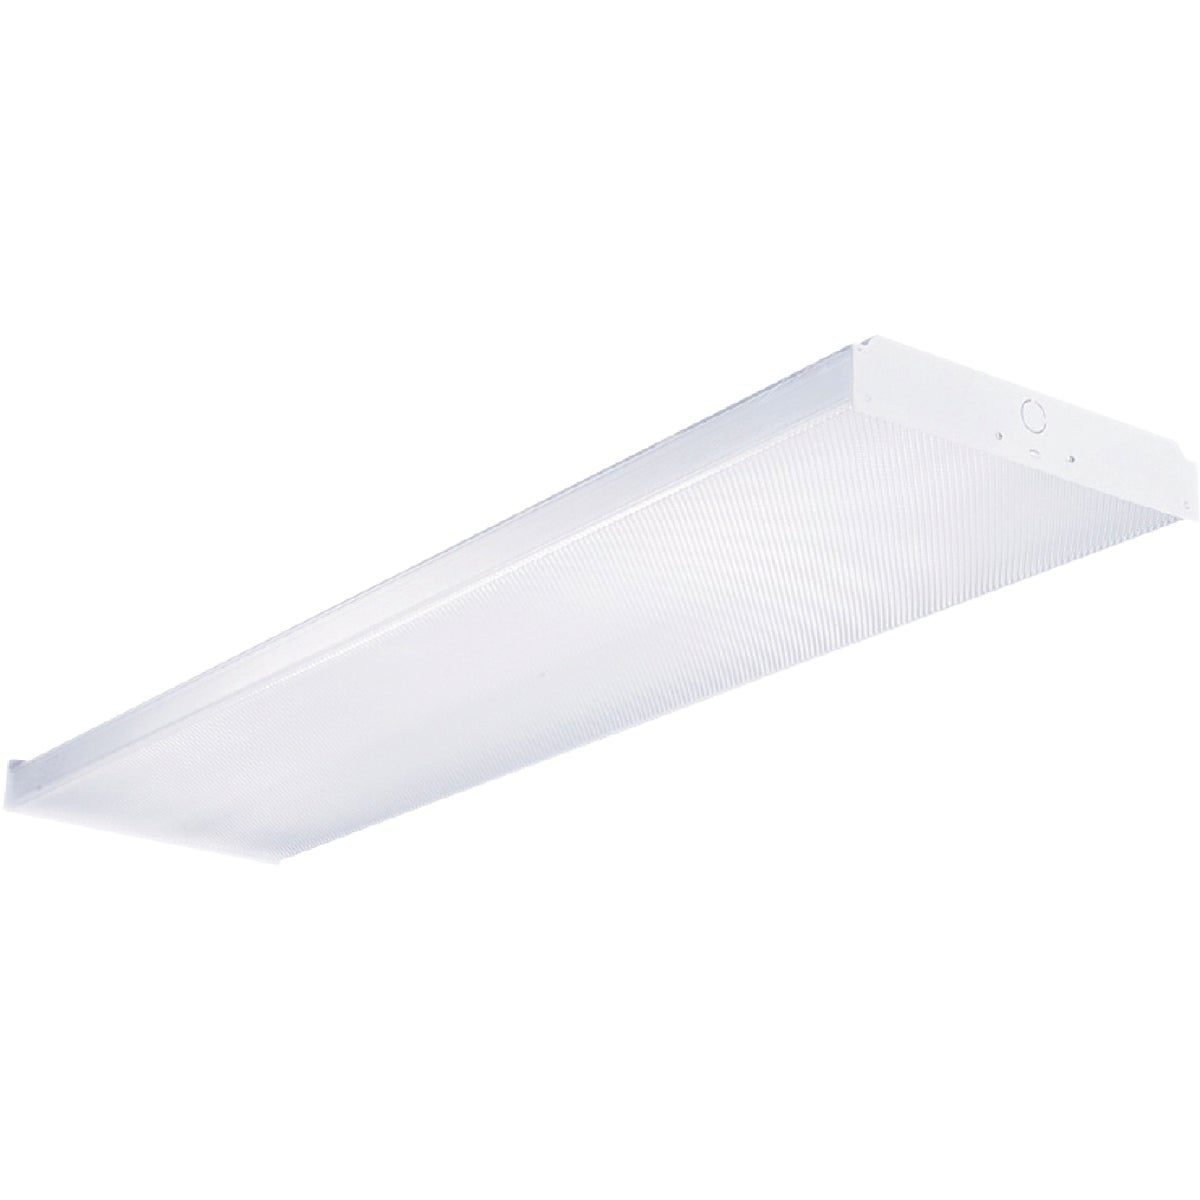 4' T8 4BULB WHT FLU WRAP - SB4321201/4GESB by Lithonia Lighting